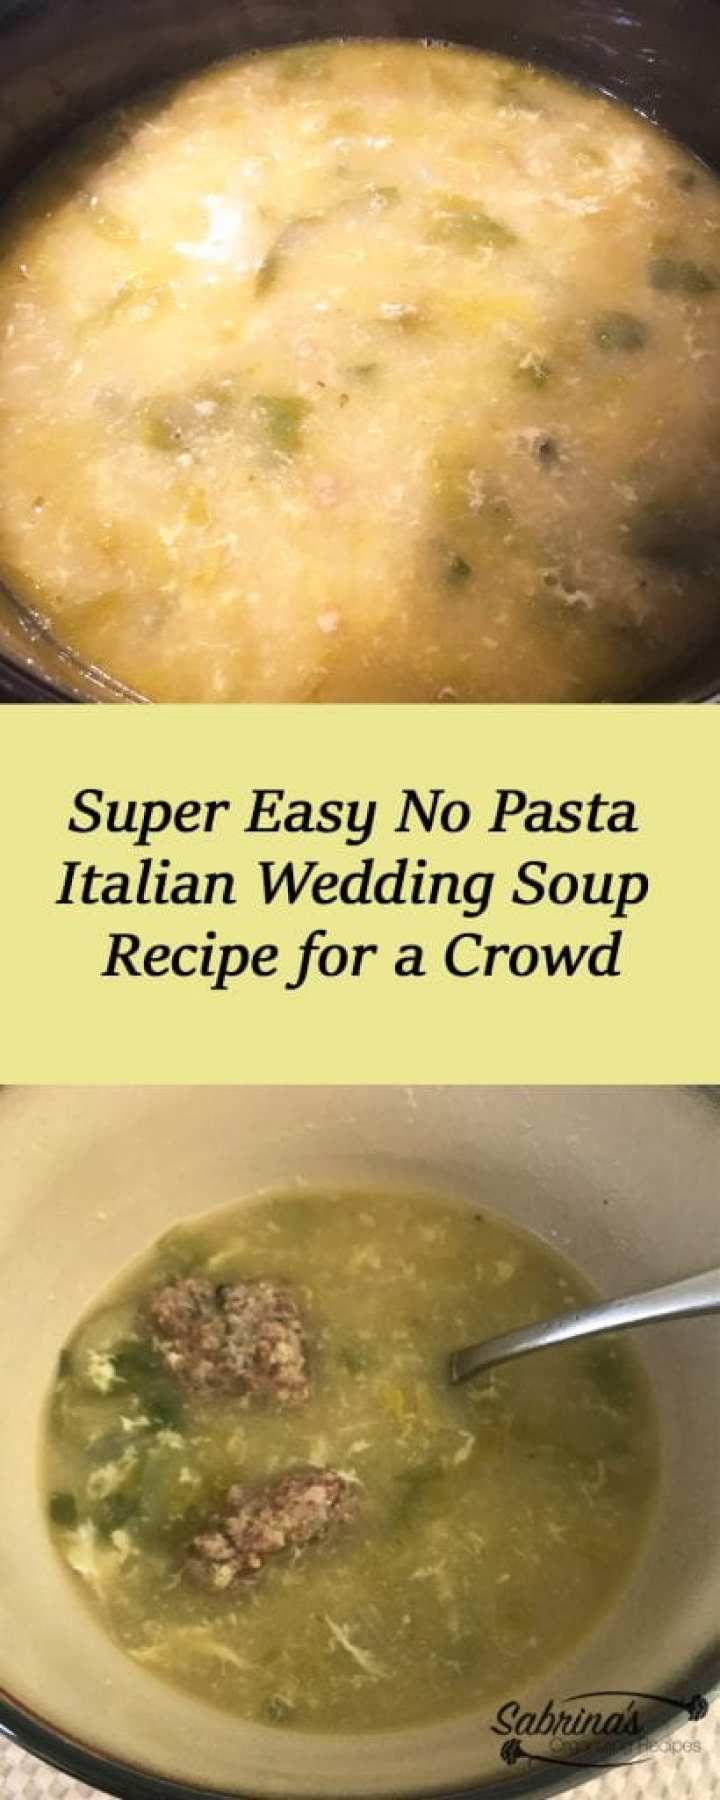 Super Easy No Pasta Italian Wedding Soup Recipe for a Crowd